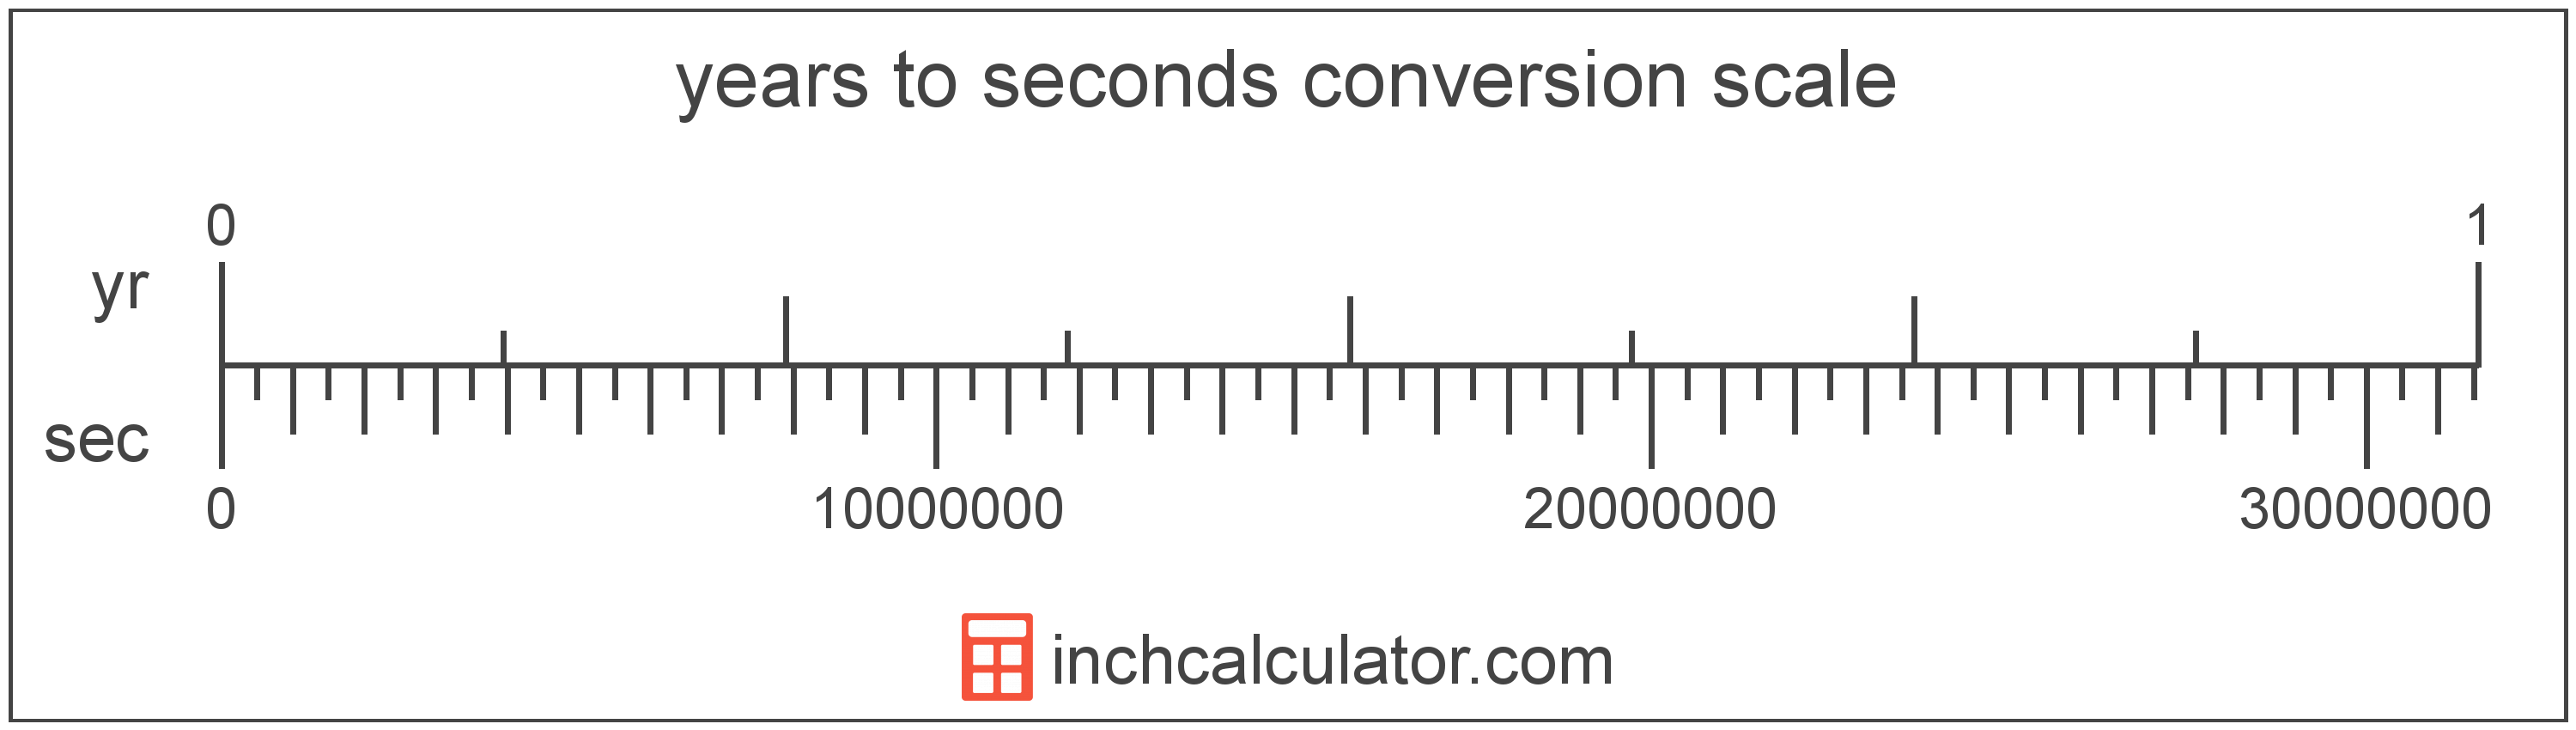 conversion scale showing seconds and equivalent years time values